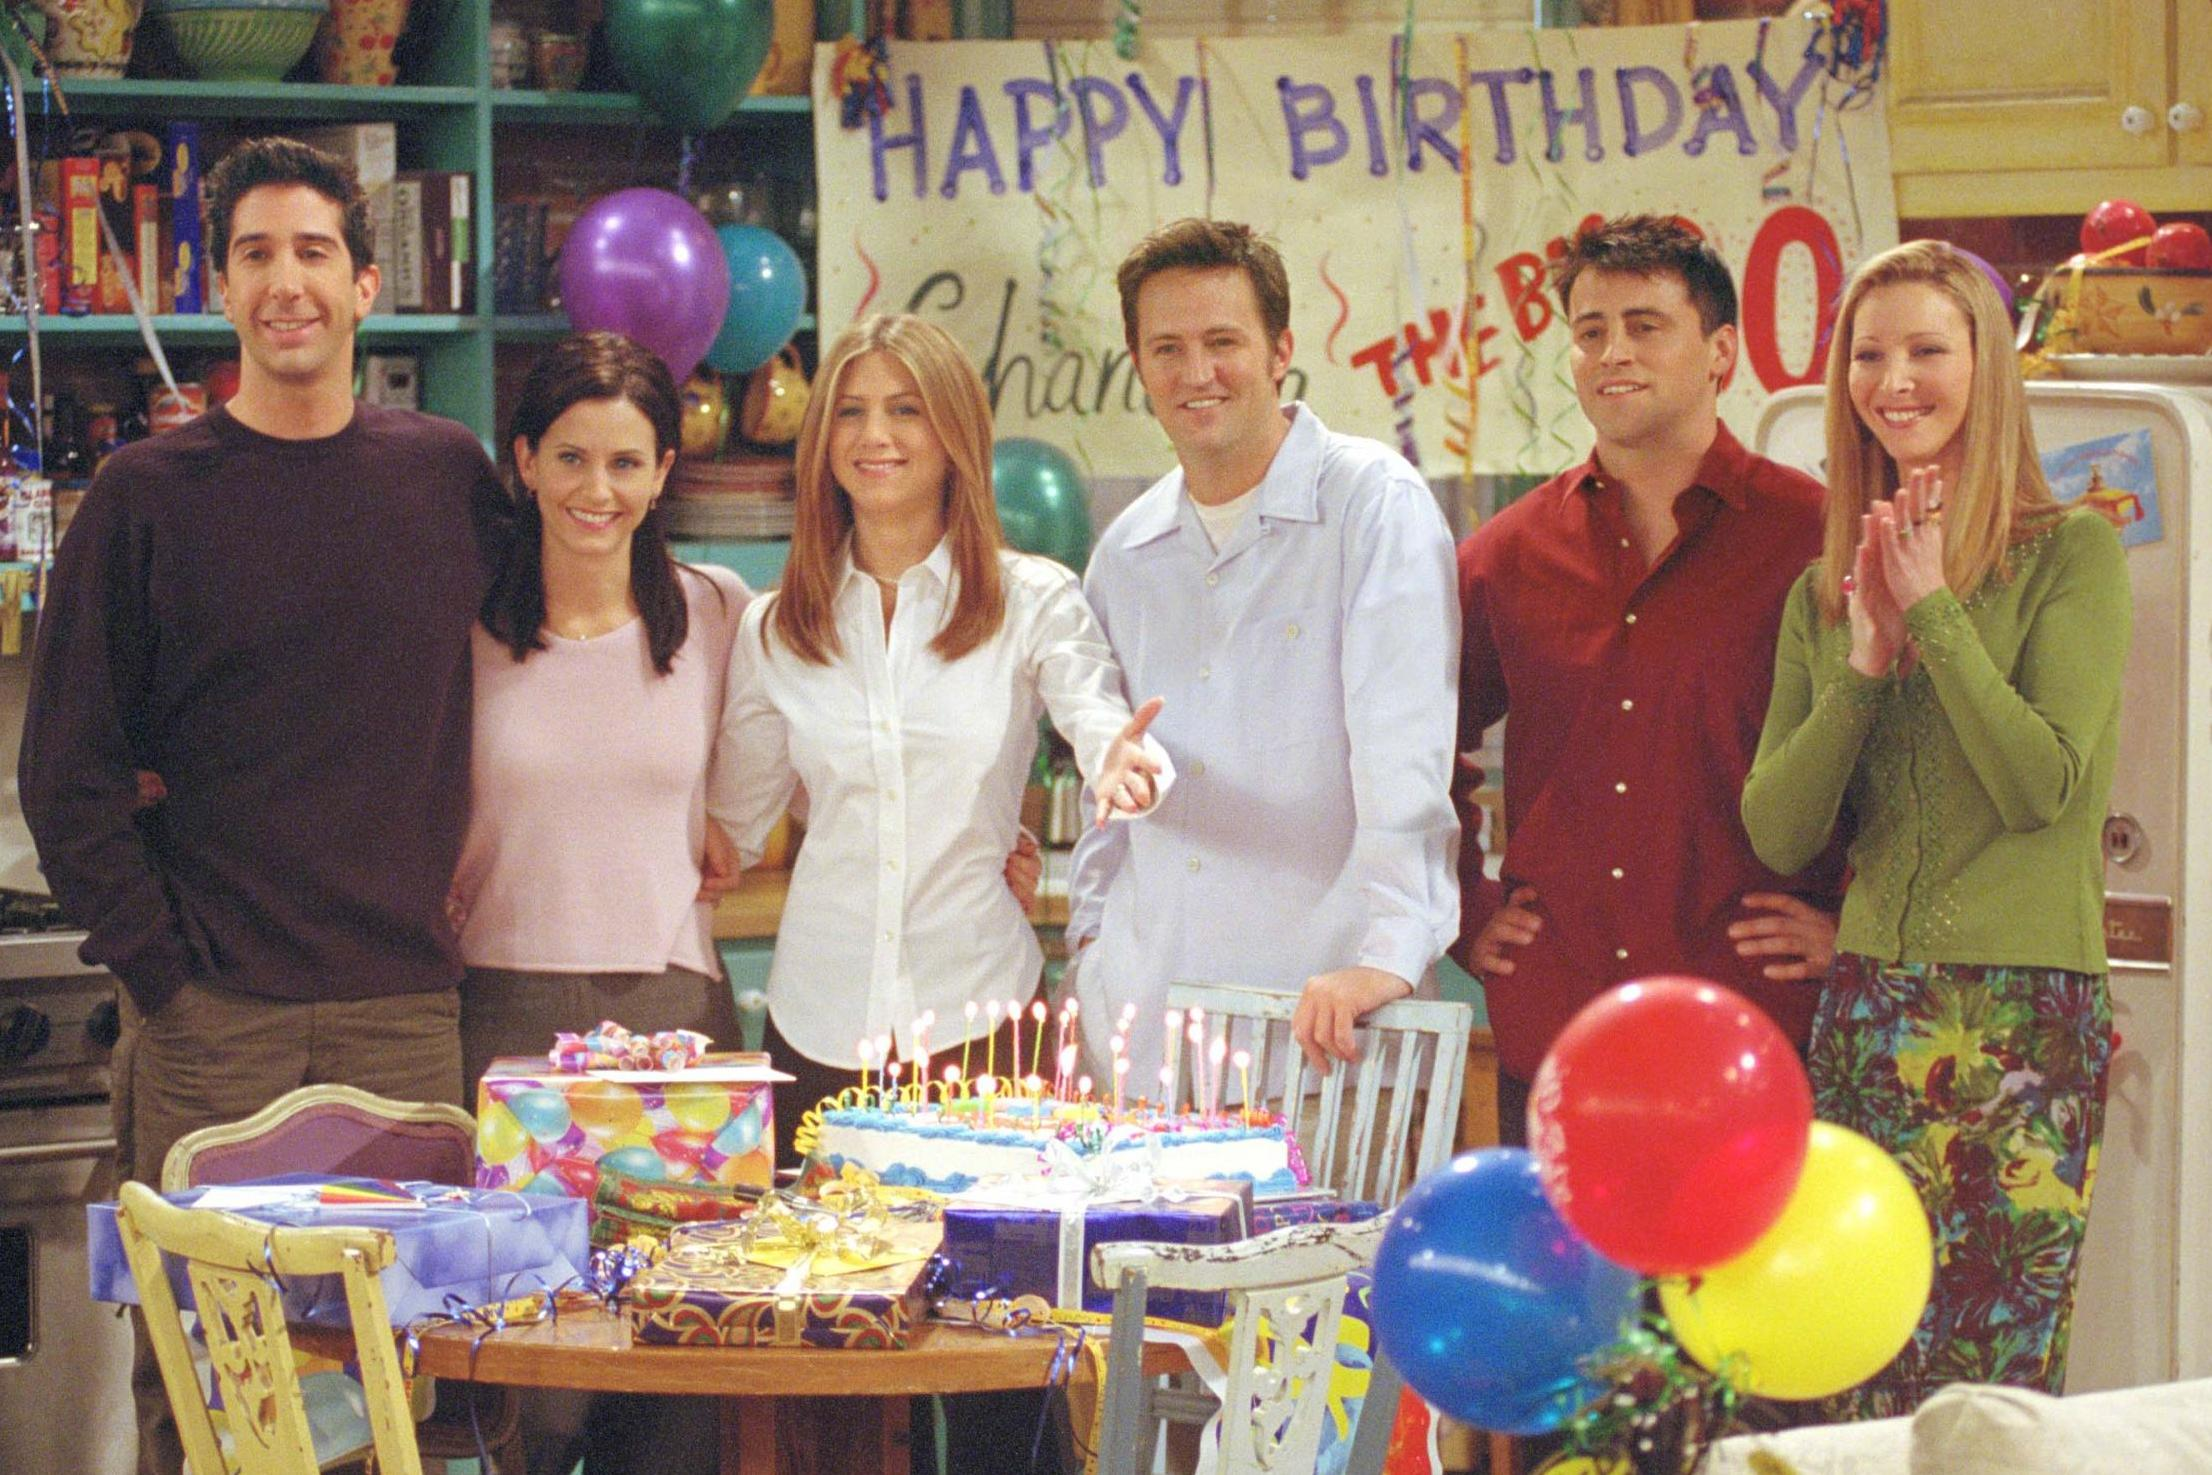 Friends 25th anniversary marked by Google with easter eggs on search engine